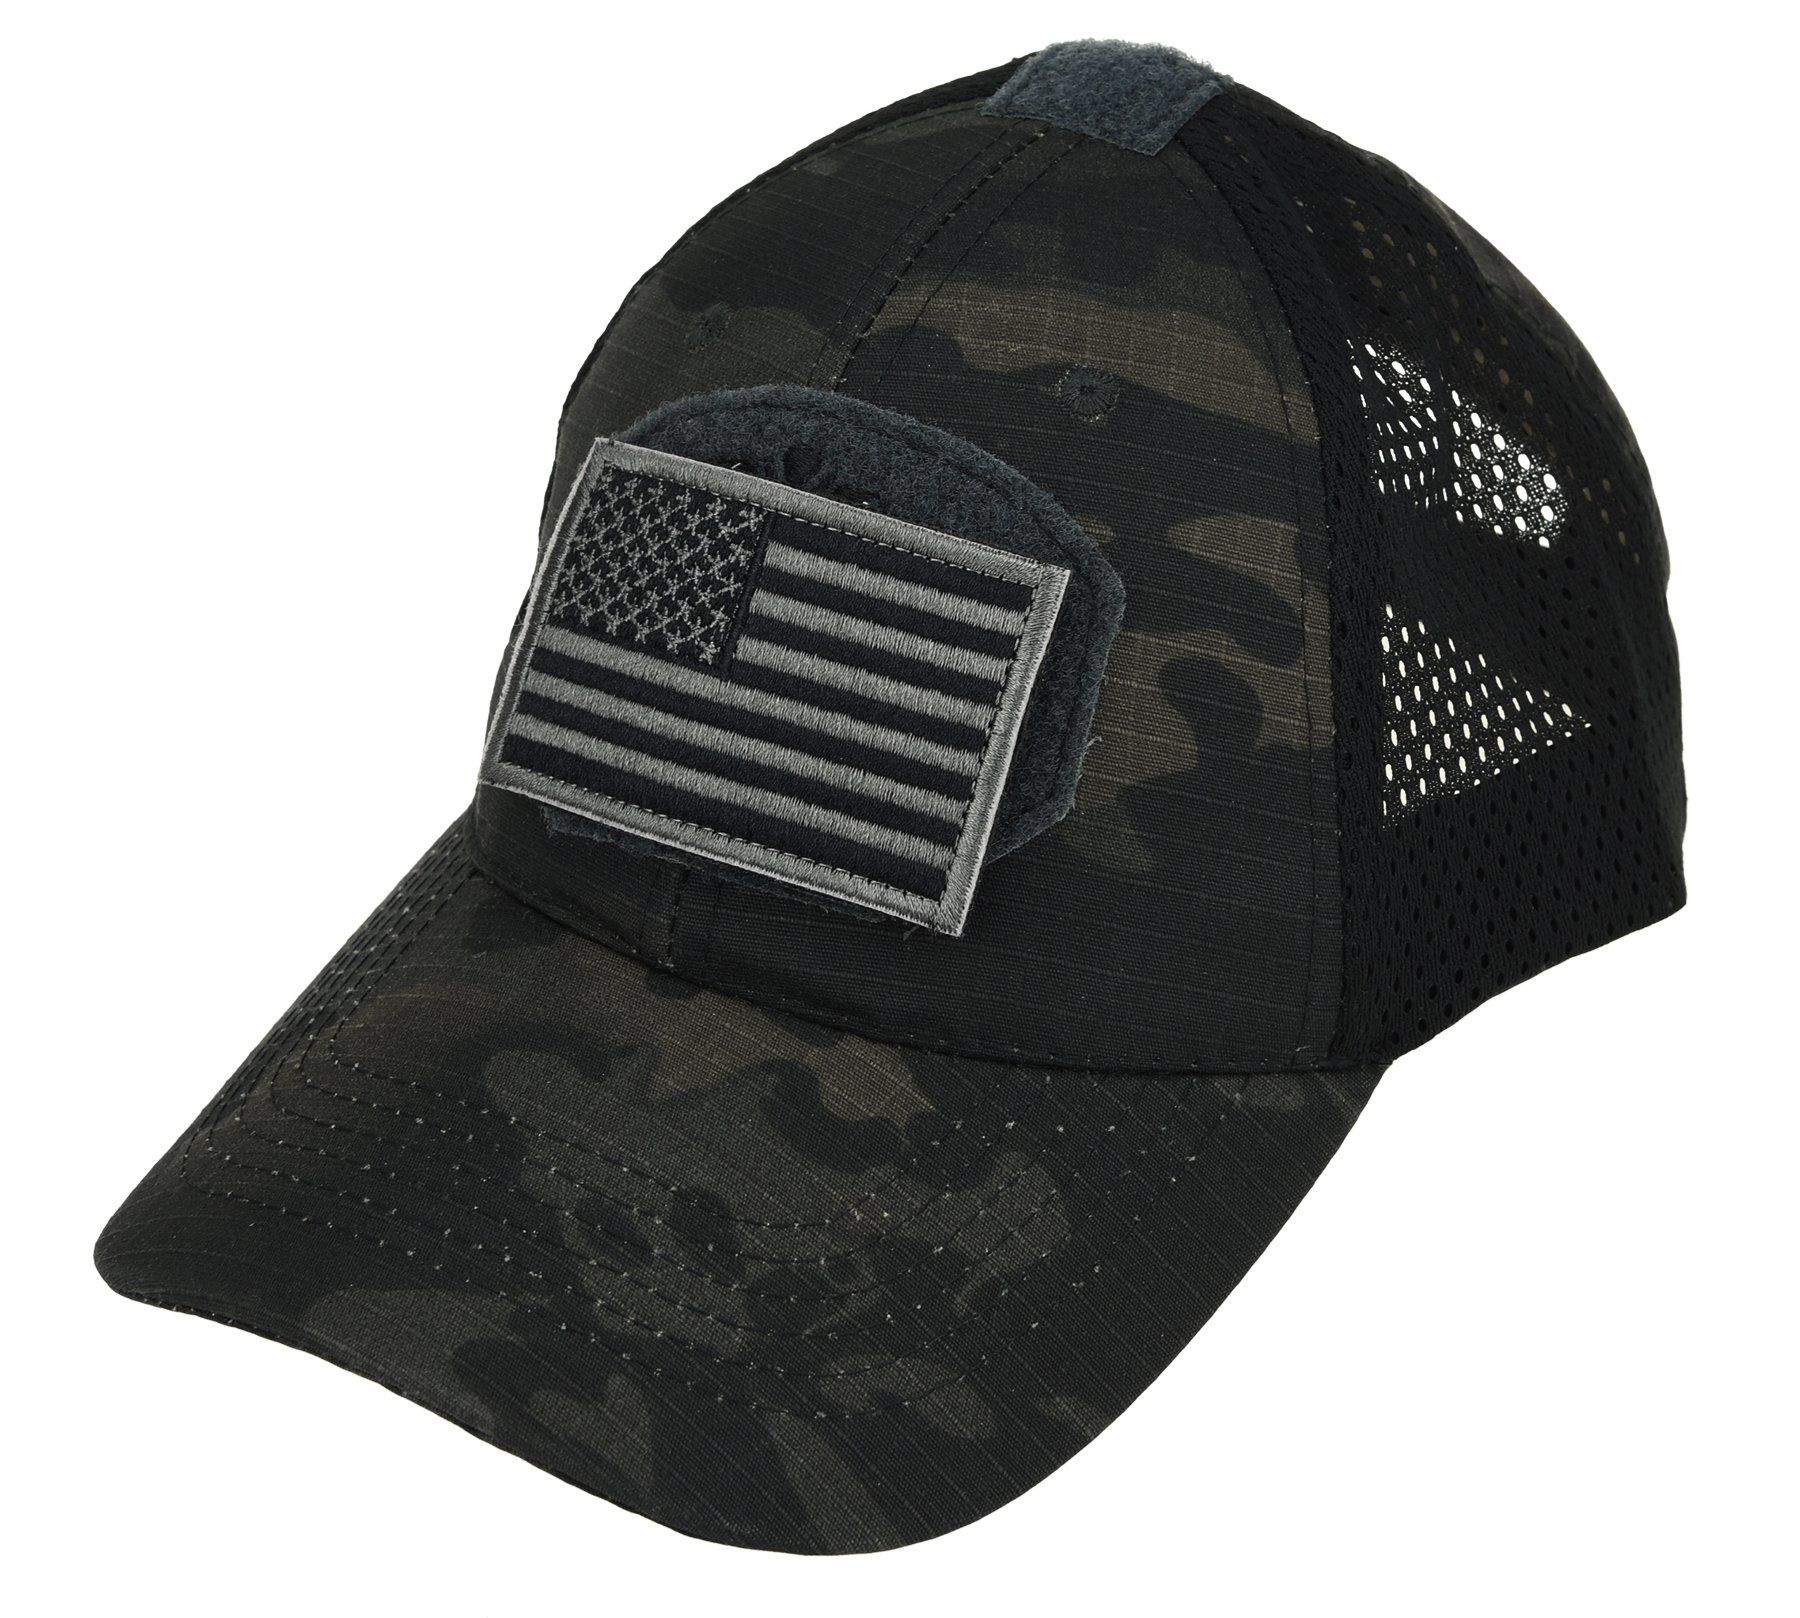 58976a1b3d5 ArcEnCiel Tactical Mesh Cap With Patch (Black). Made of a comfortable  cotton +